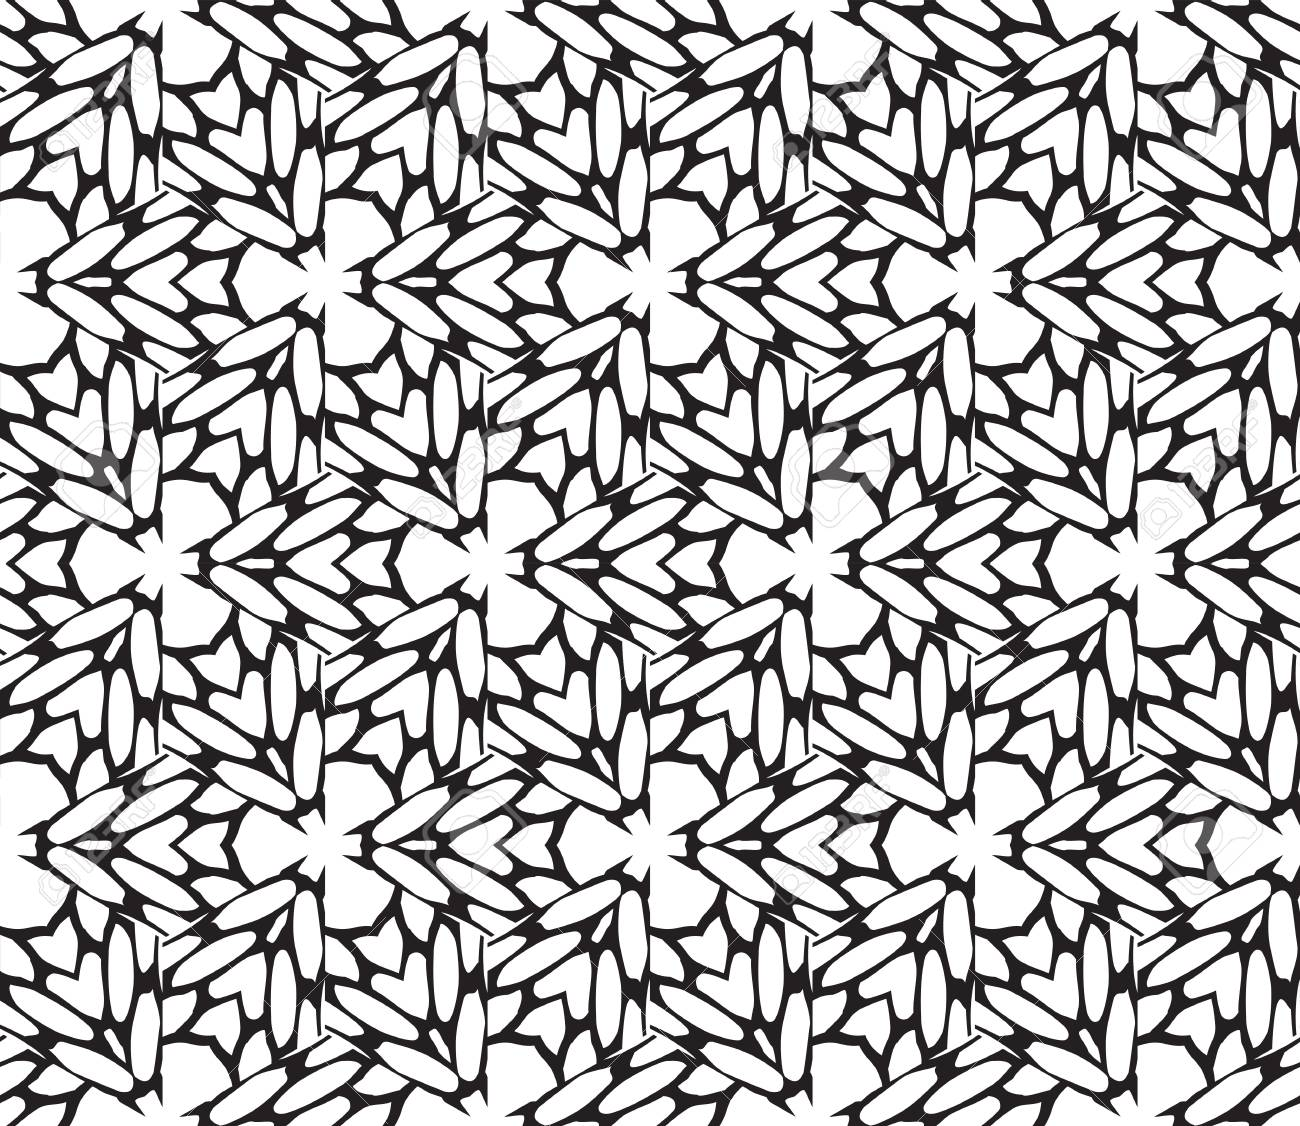 Black And White Illustration Abstract Floral Pattern Geometry Royalty Free Cliparts Vectors And Stock Illustration Image 100073227